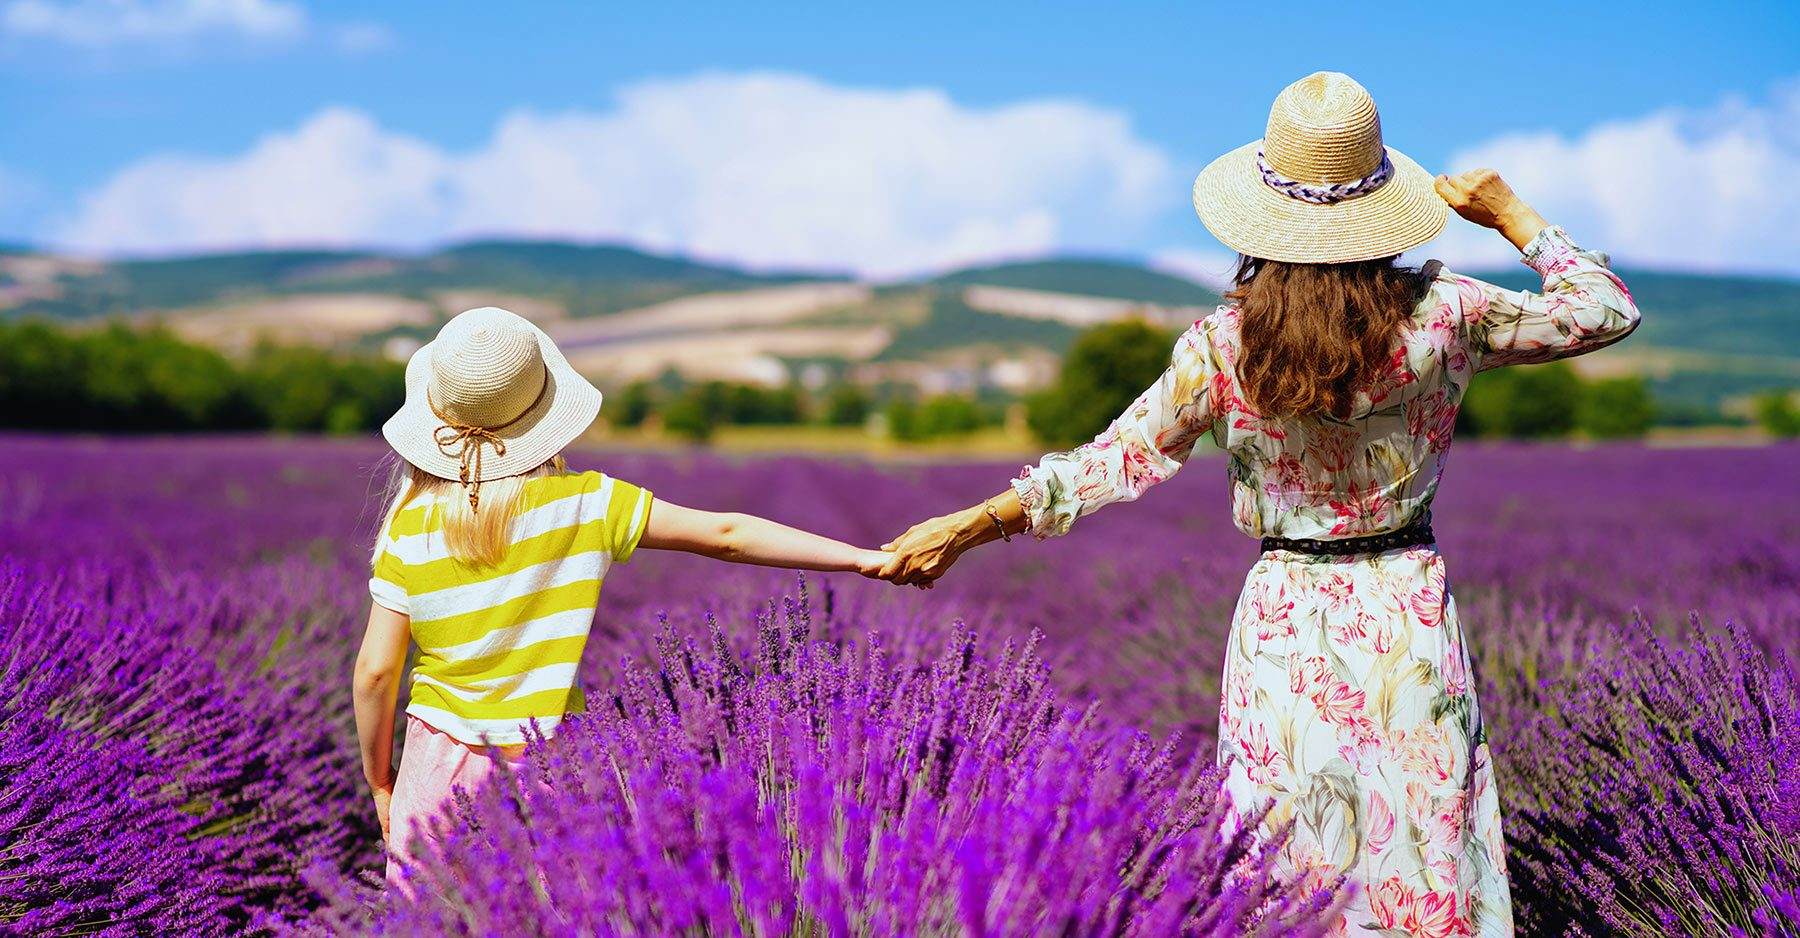 a litte girld and a woman into lavender fields